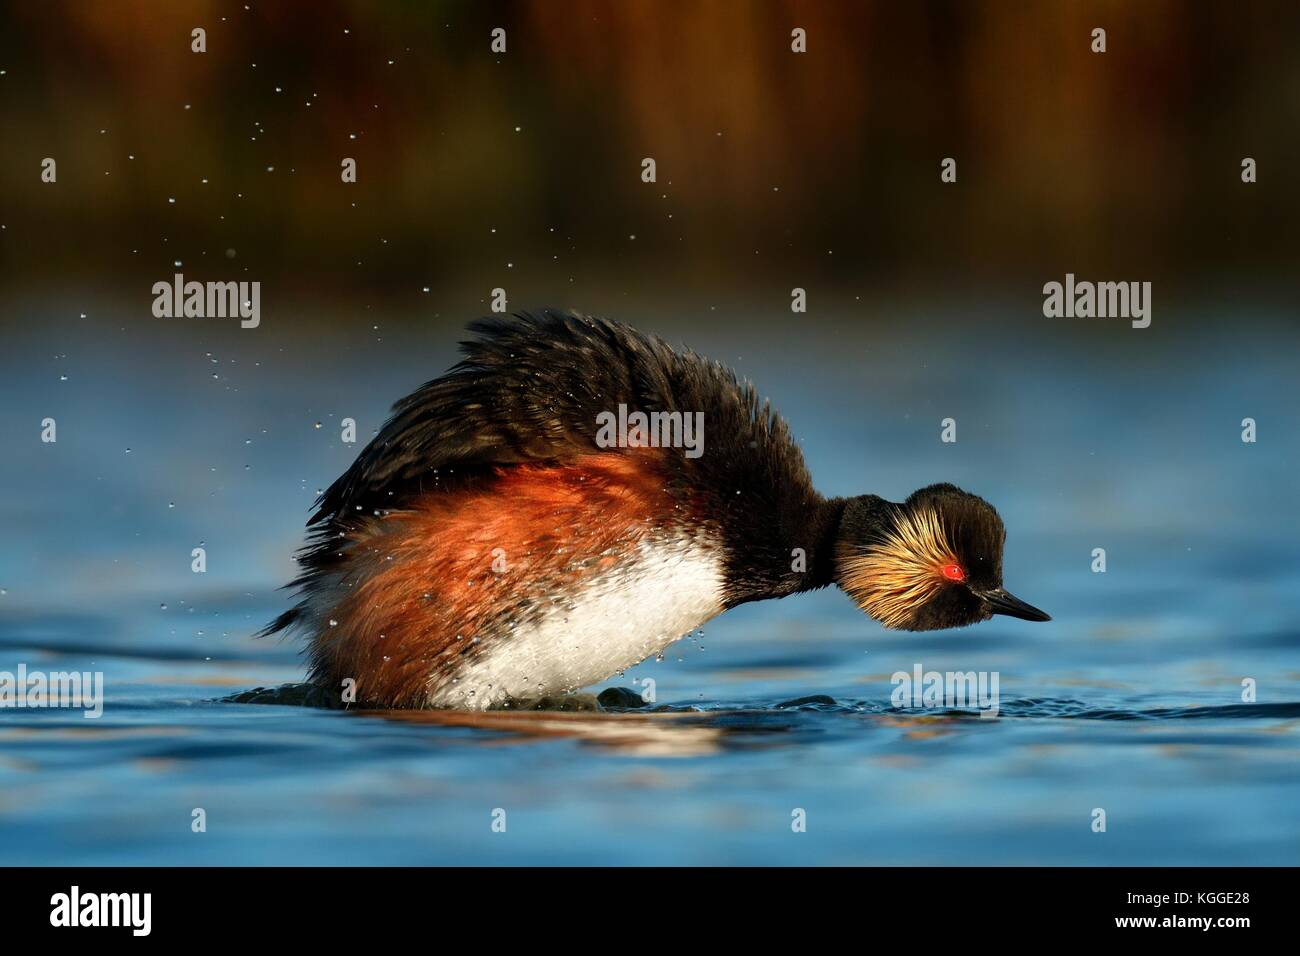 Eared Grebe - Podiceps nigricollis swimming in the water taking the bath in the morning sunlight - Stock Image